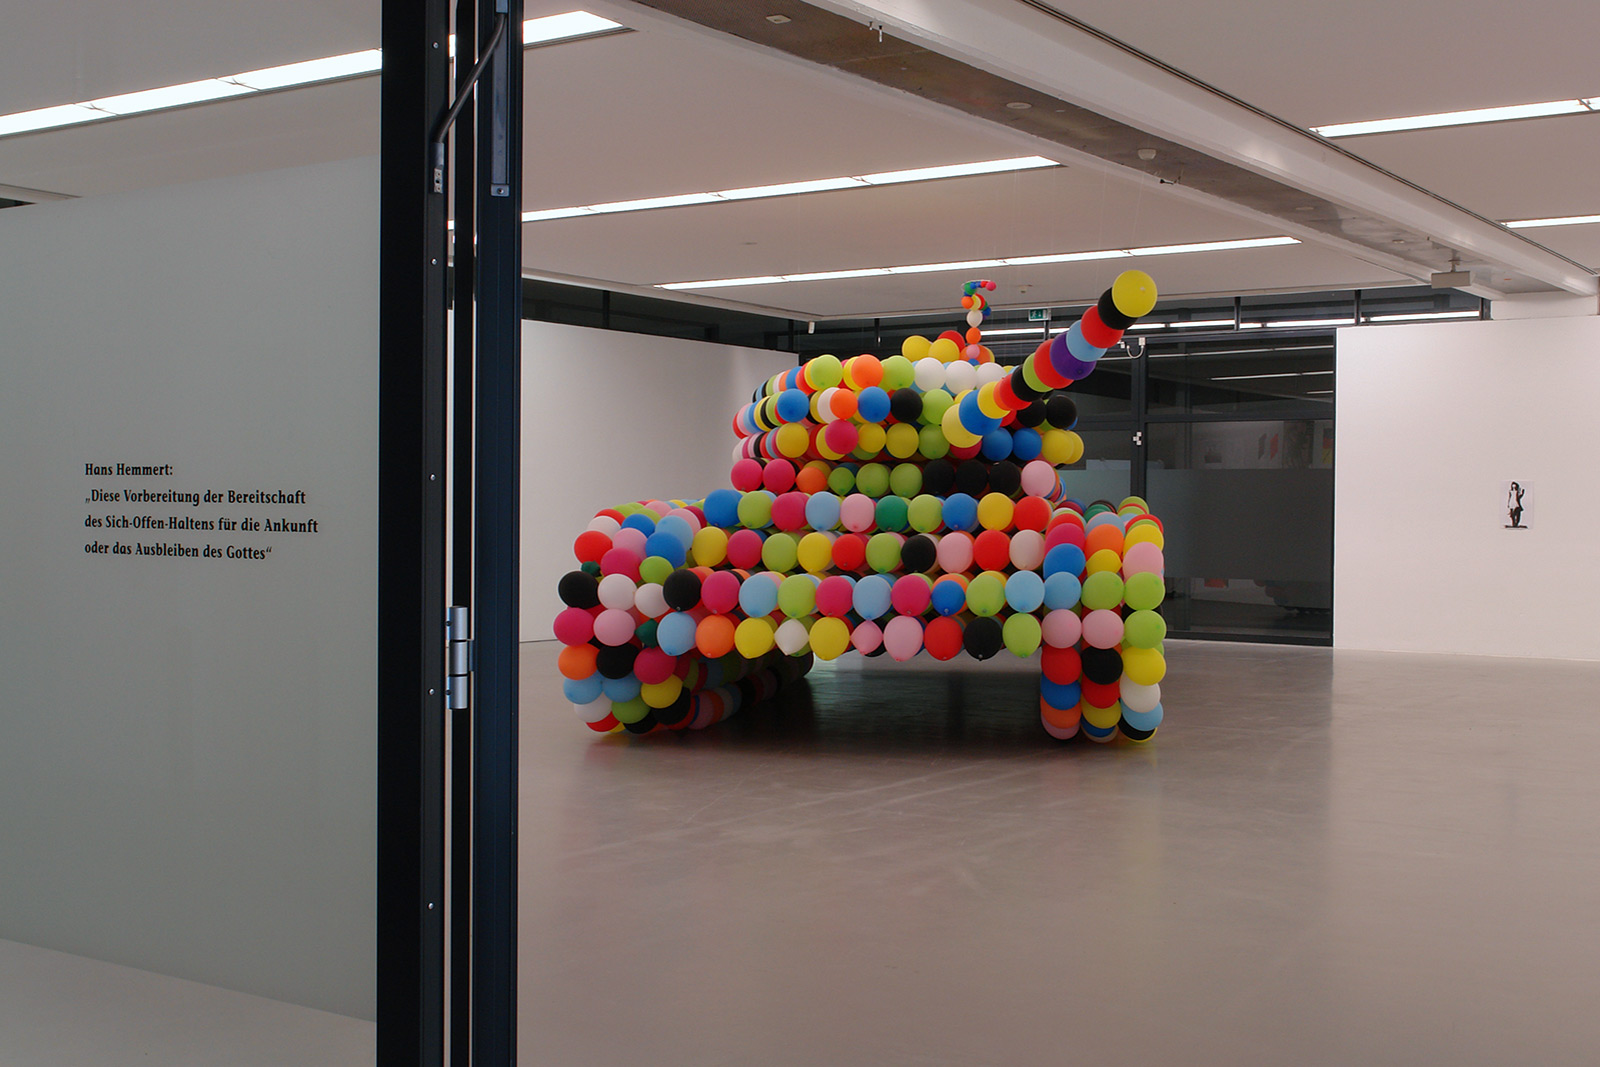 life size german tank by 3600 latex balloons, 2007, Staedtische Galerie Nordhorn